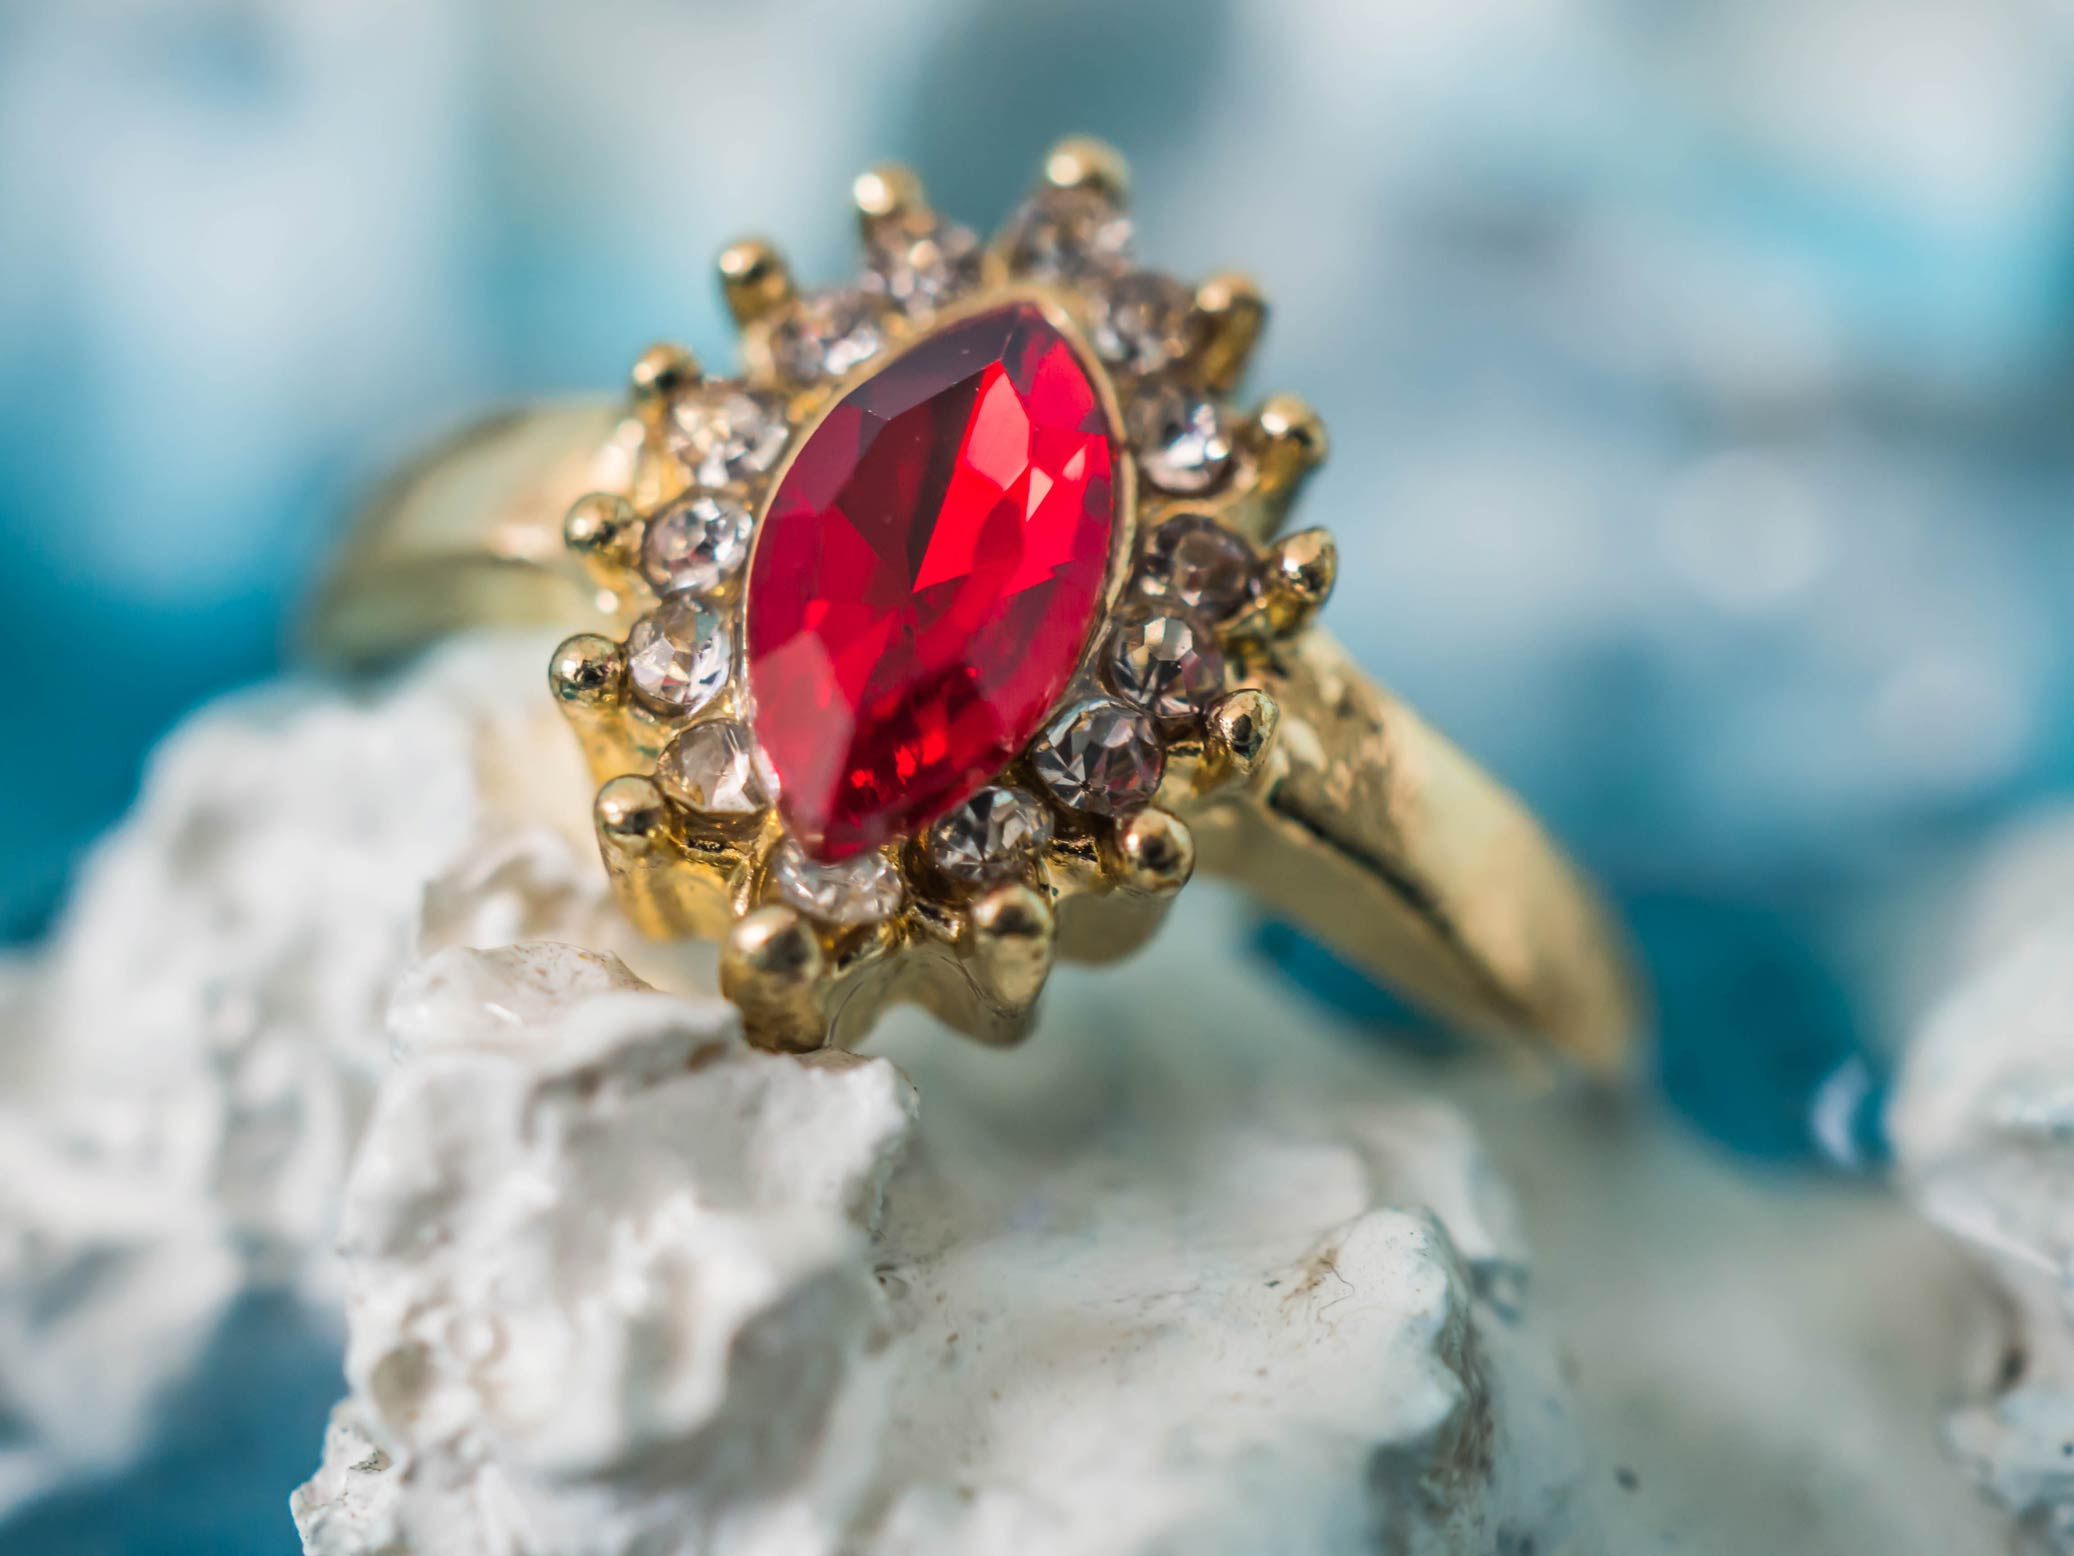 D:\Работа\SEO\GUEST POSTS\POSTS 2019\20.09.2019\Uyo Choose_A_Vintage_Engagement_Ring_to_Fit_Your_Wedding_Style\shutterstock_1073164316.jpg